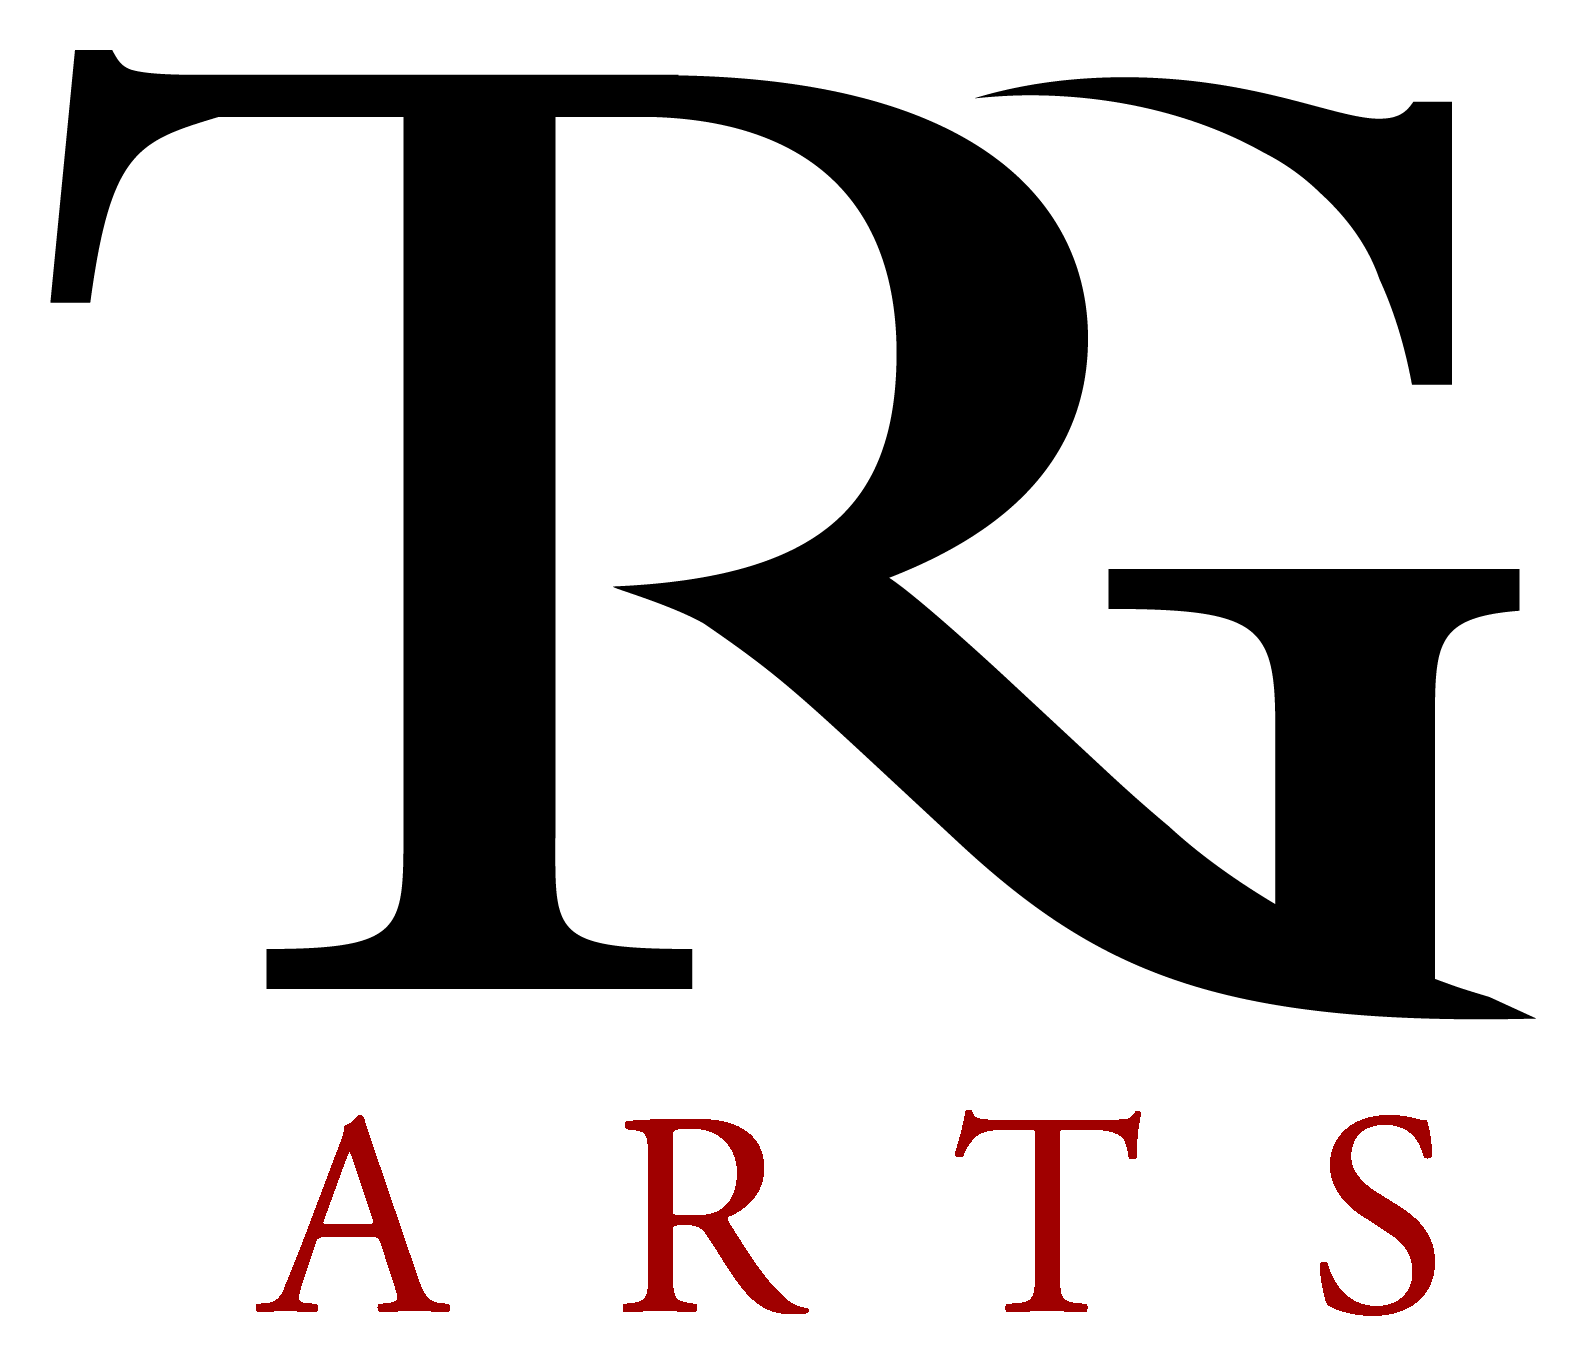 November Arts News From Copper